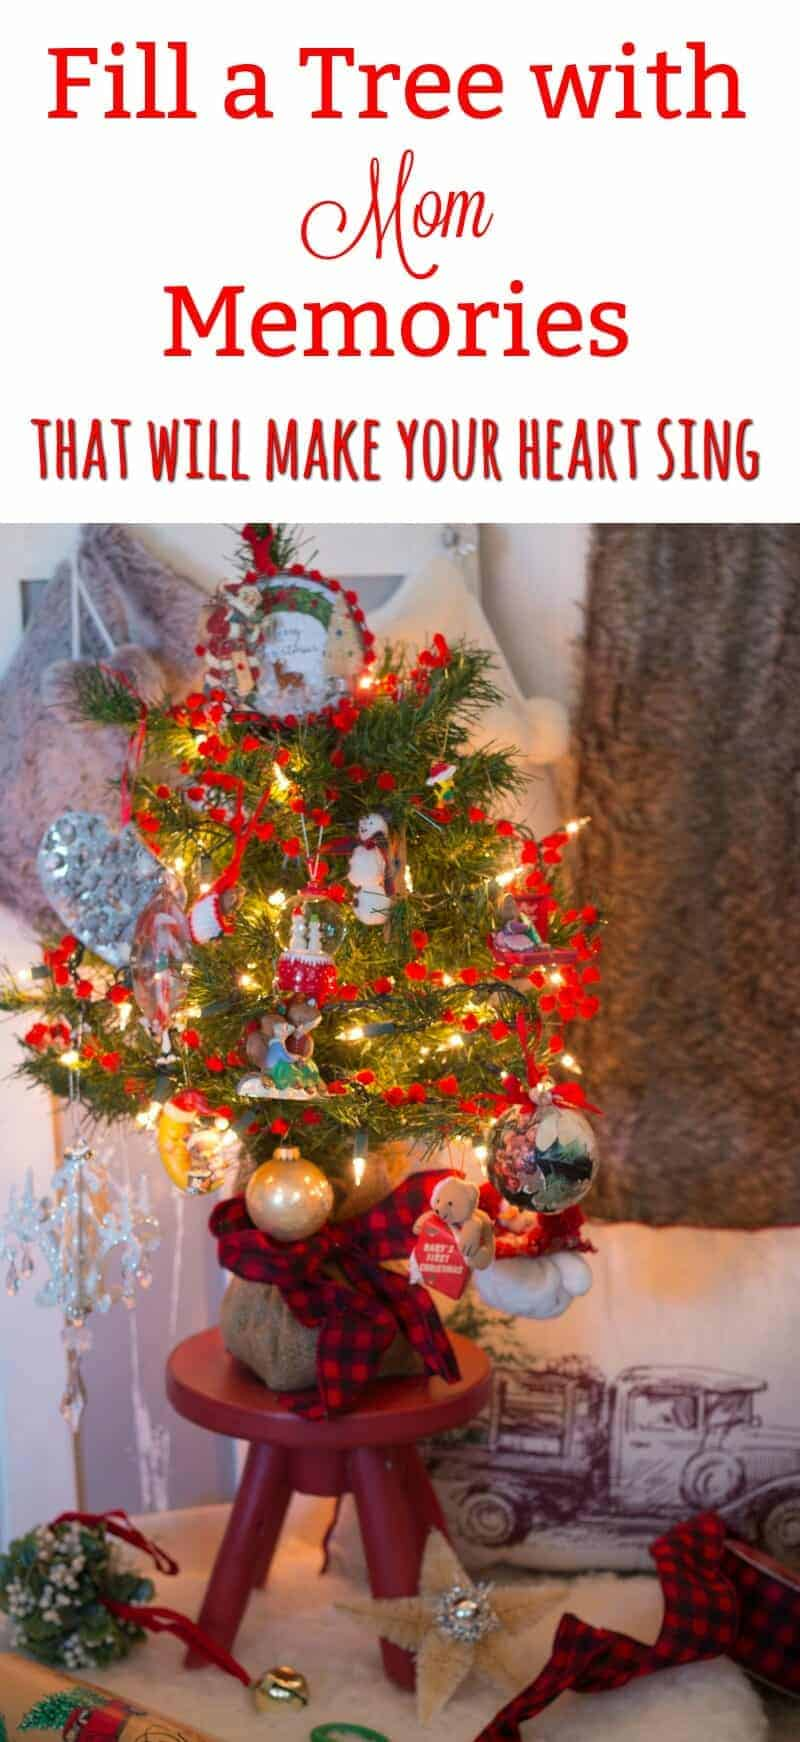 Fill a Tree with Mom Memories that will make your heart sing